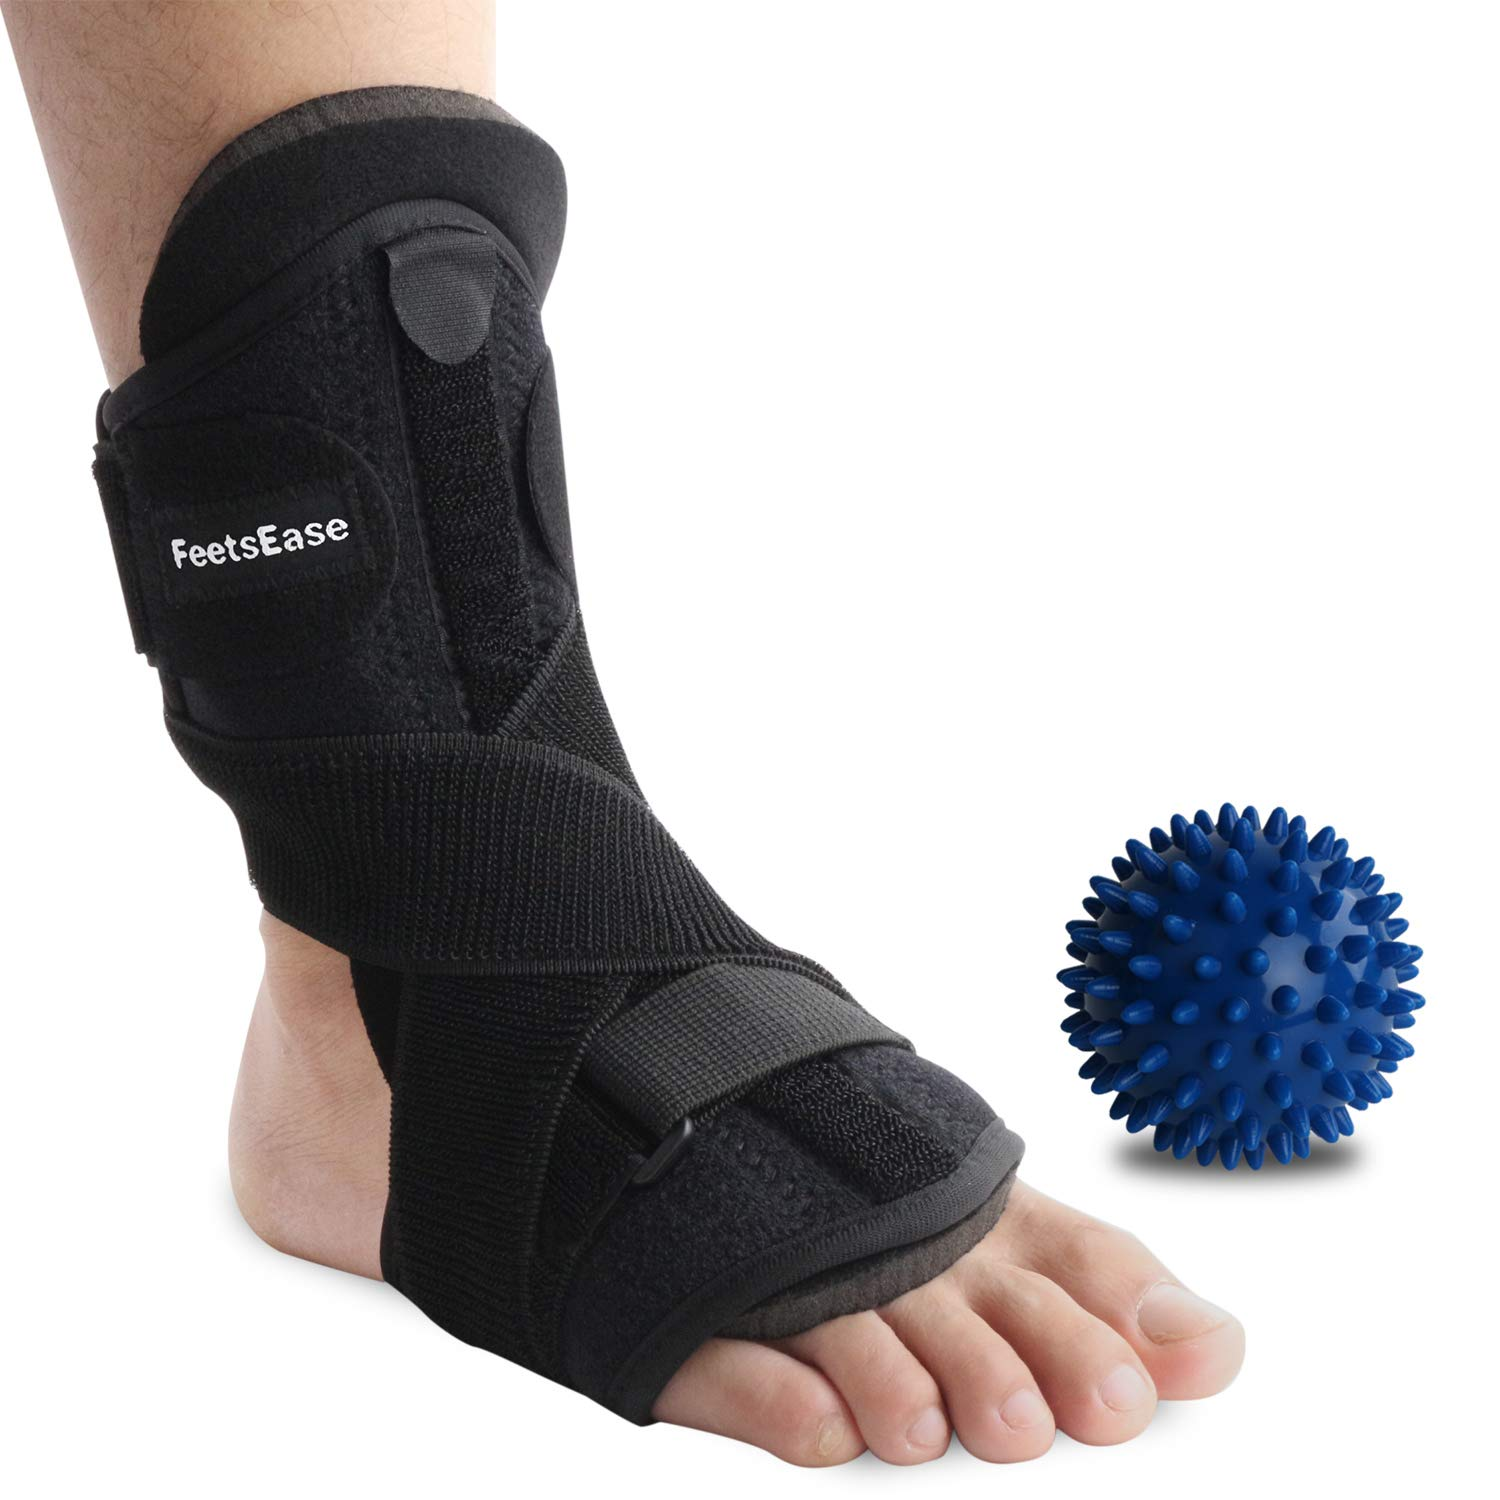 Plantar Fasciitis Night Splint and Support for Pain Relief - Adjustable Dorsal Night Splint Foot Brace for Achilles Tendonitis Foot Stretch for Men & Women [1 Pack] by FeetsEase